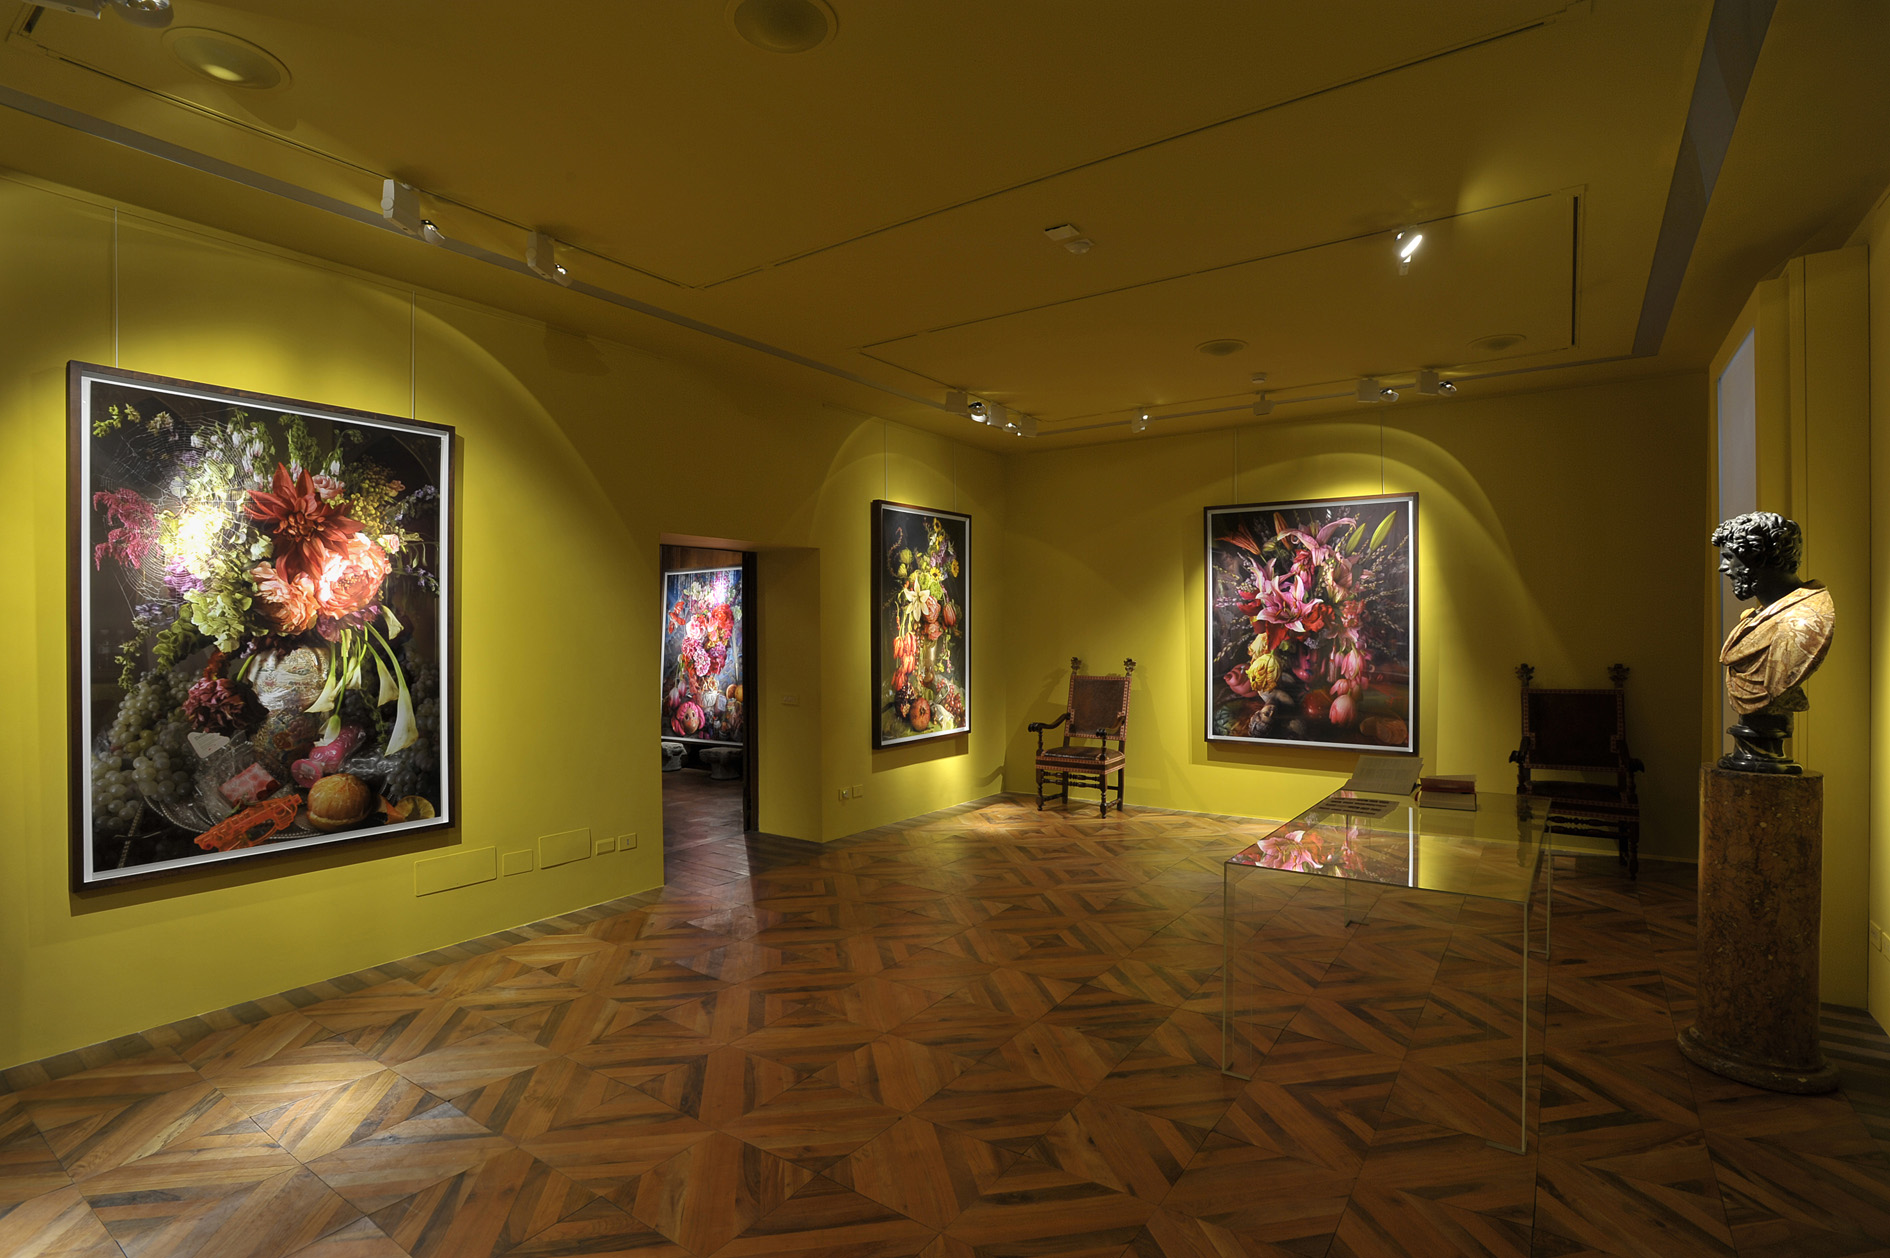 David LaChapelle - The Earth Laughs in Flowers Series - veduta della mostra presso la Galleria Robilant+Voena, Milano 2012